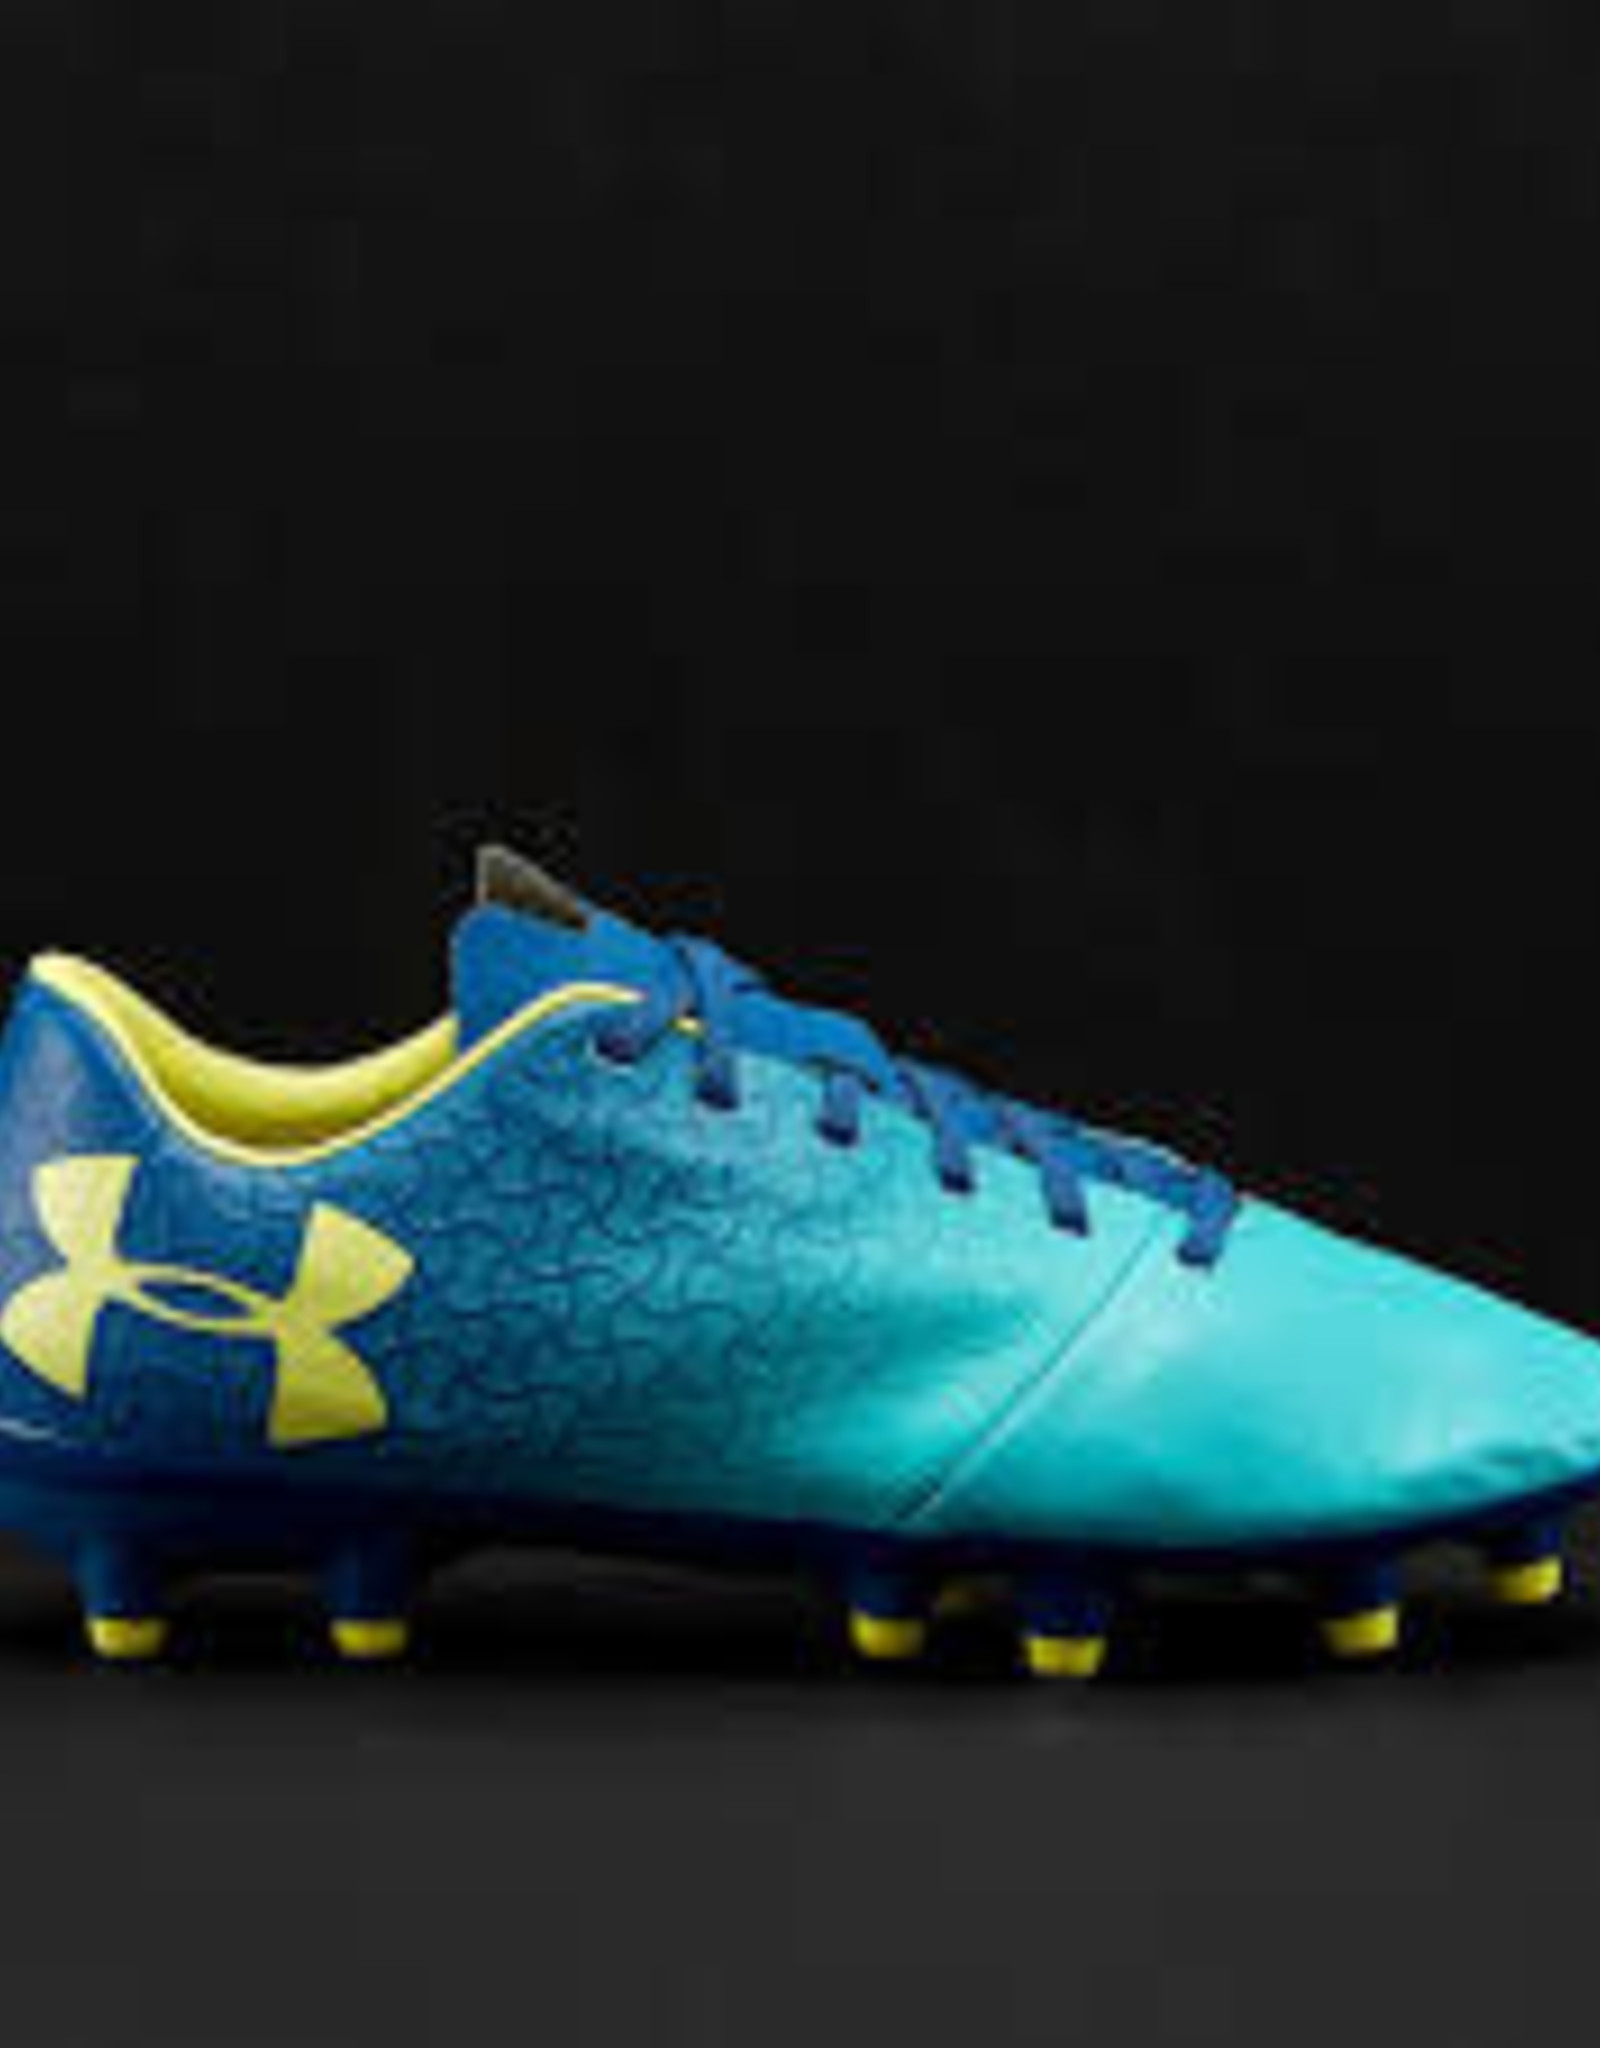 Under Armour UA Soulier Magnetico(8) TF Blu/YL